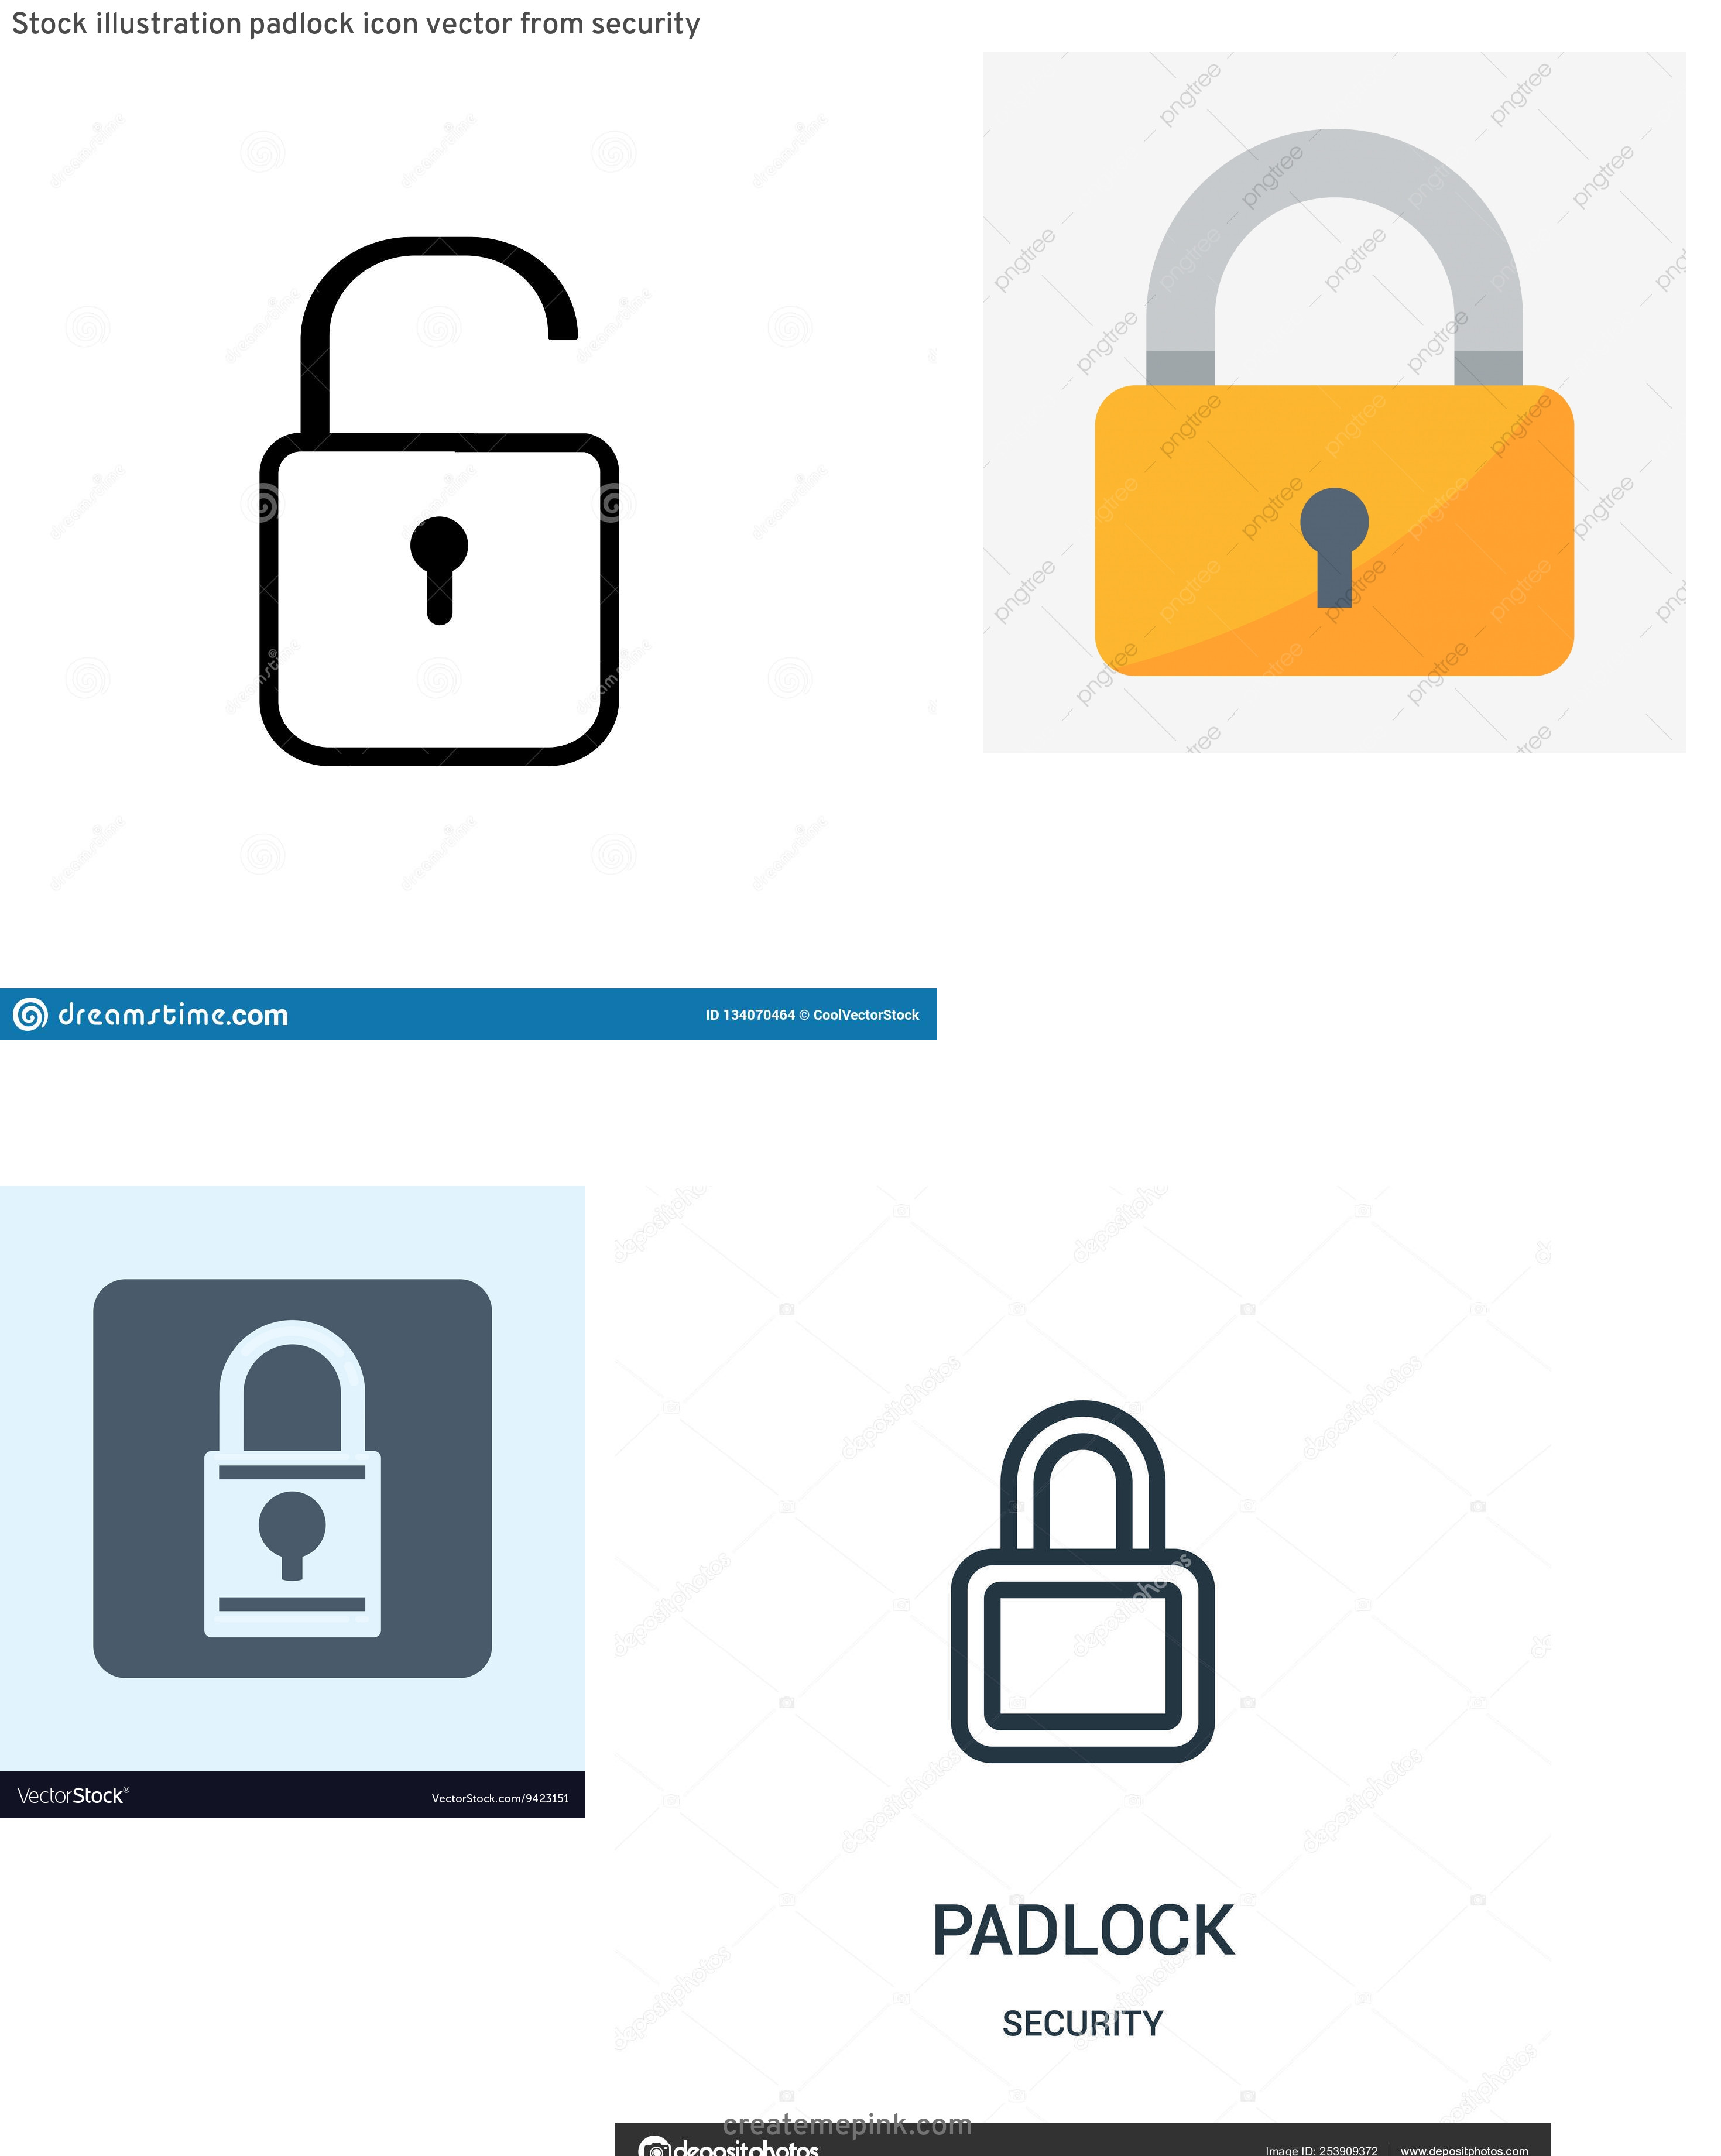 Padlock Icon Vector: Stock Illustration Padlock Icon Vector From Security